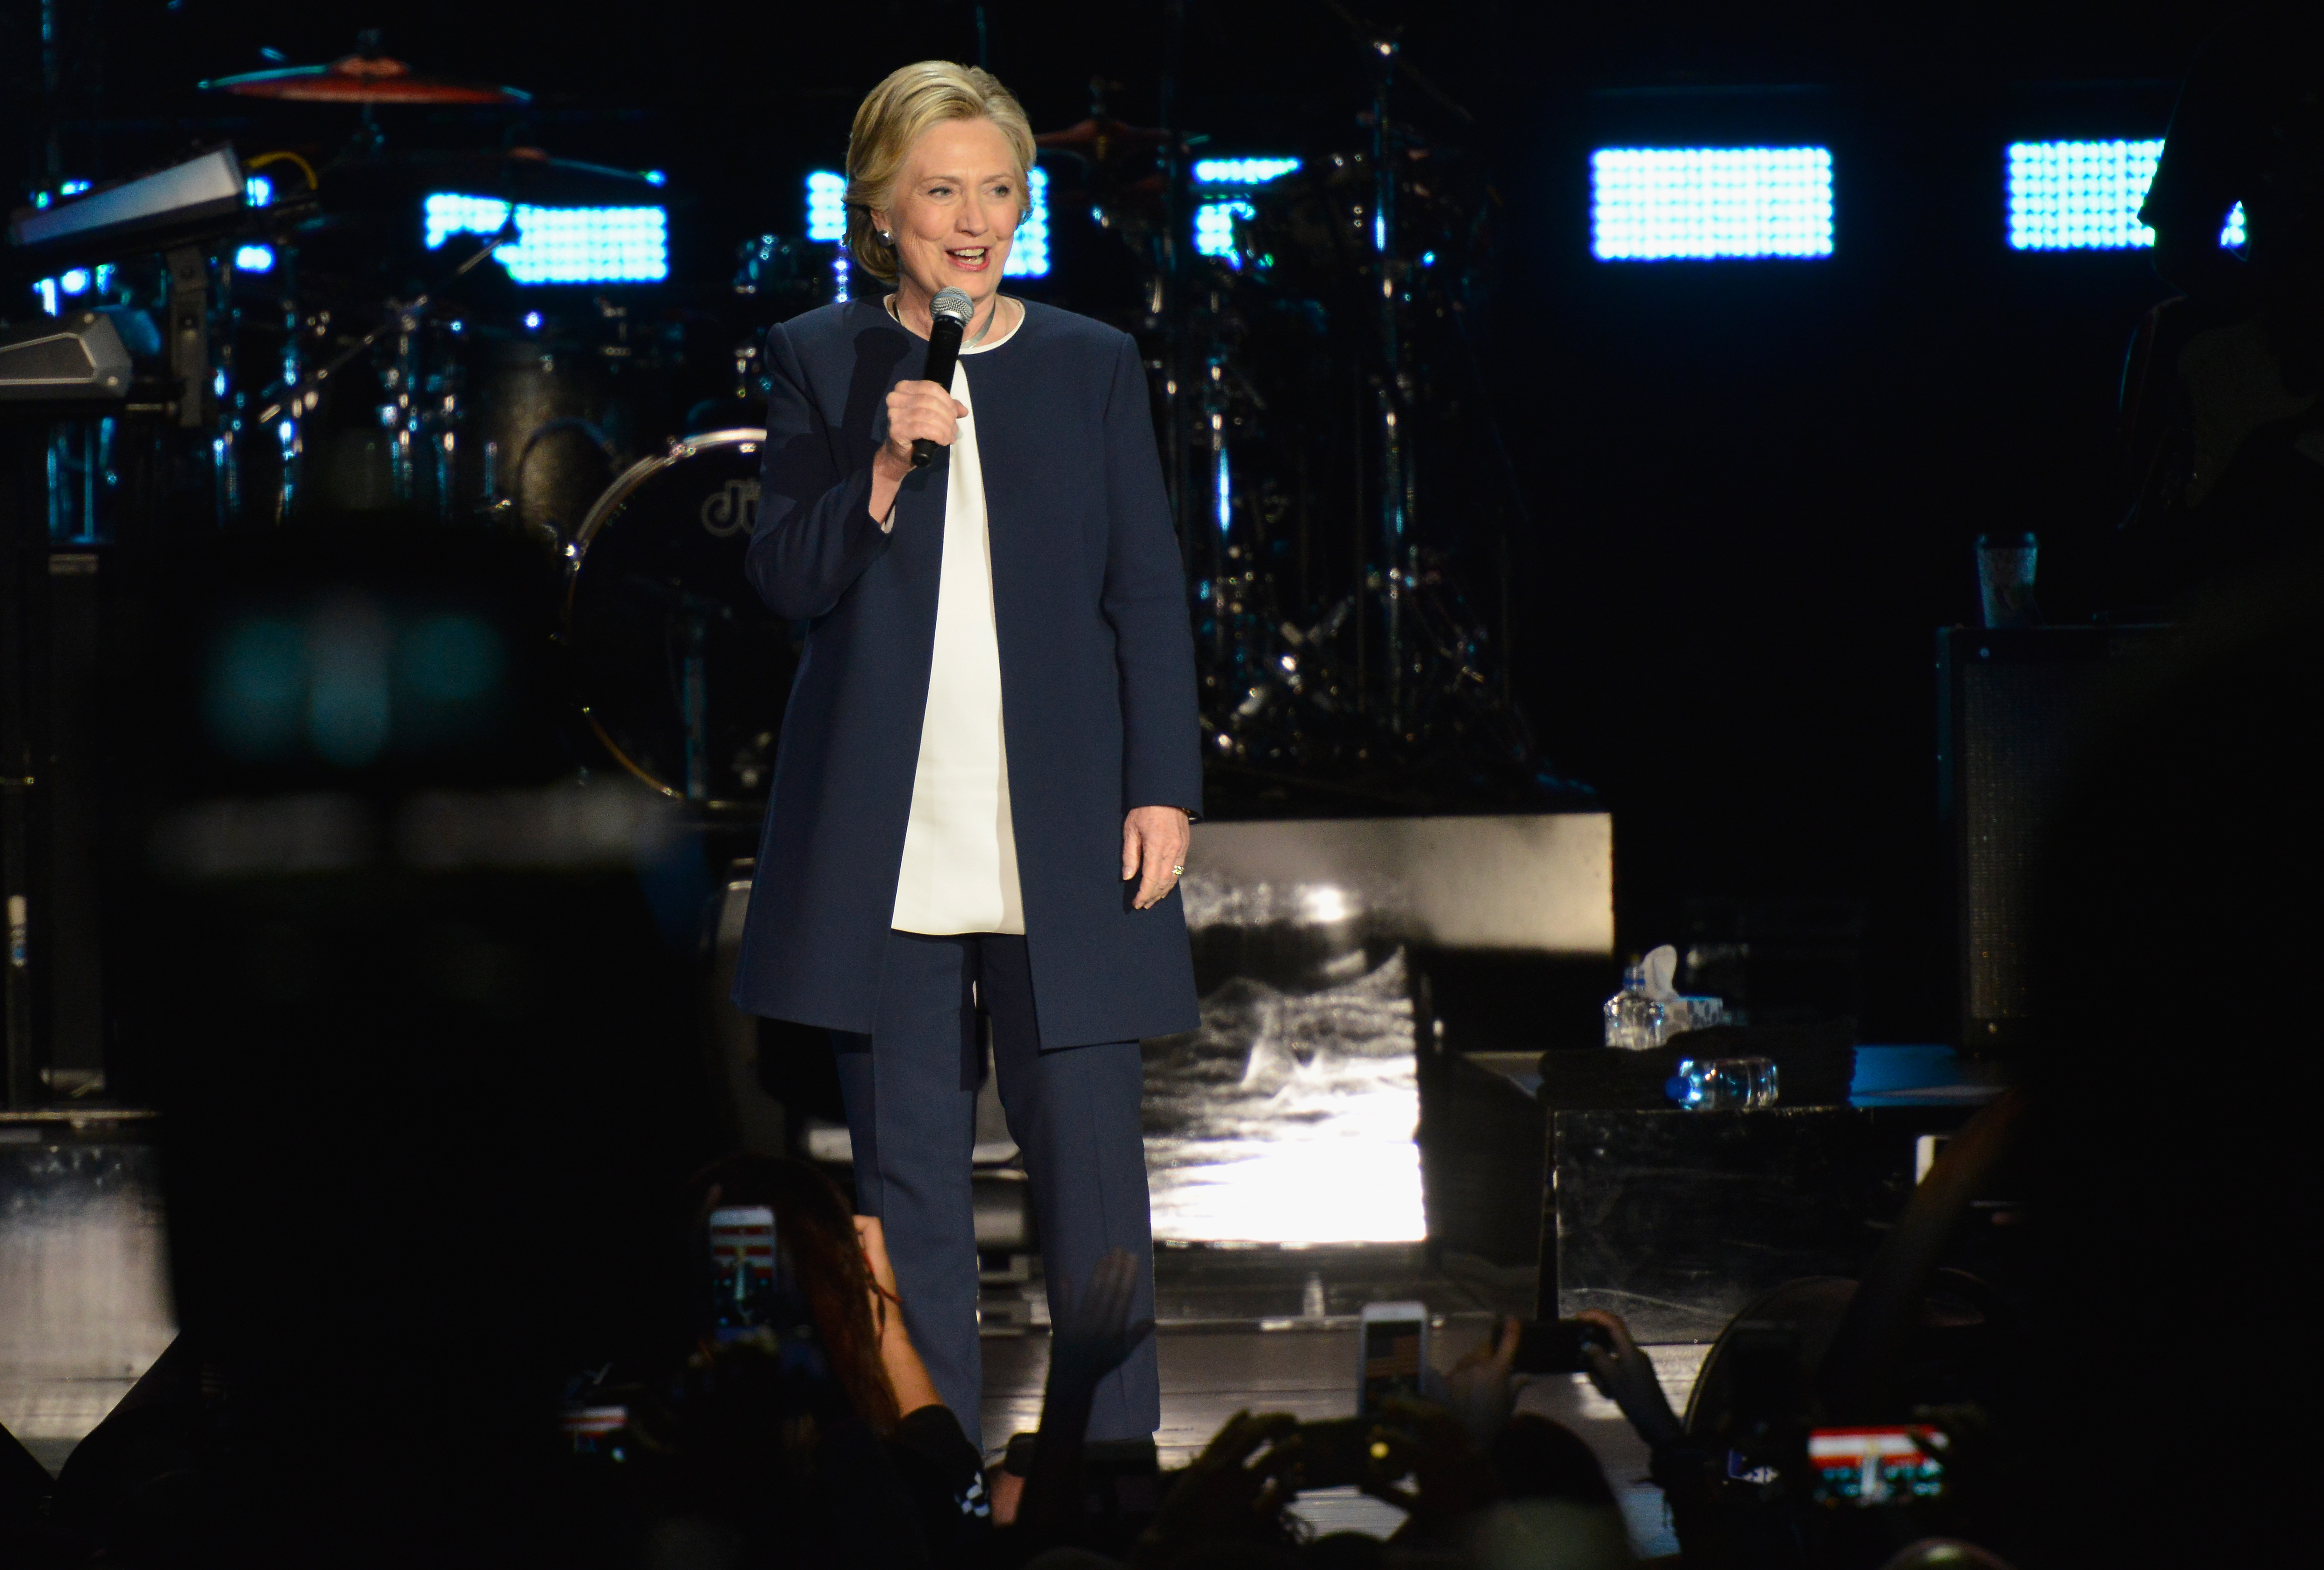 Jay Z Holds Get Out The Vote Concert In Support Of Hillary Clinton